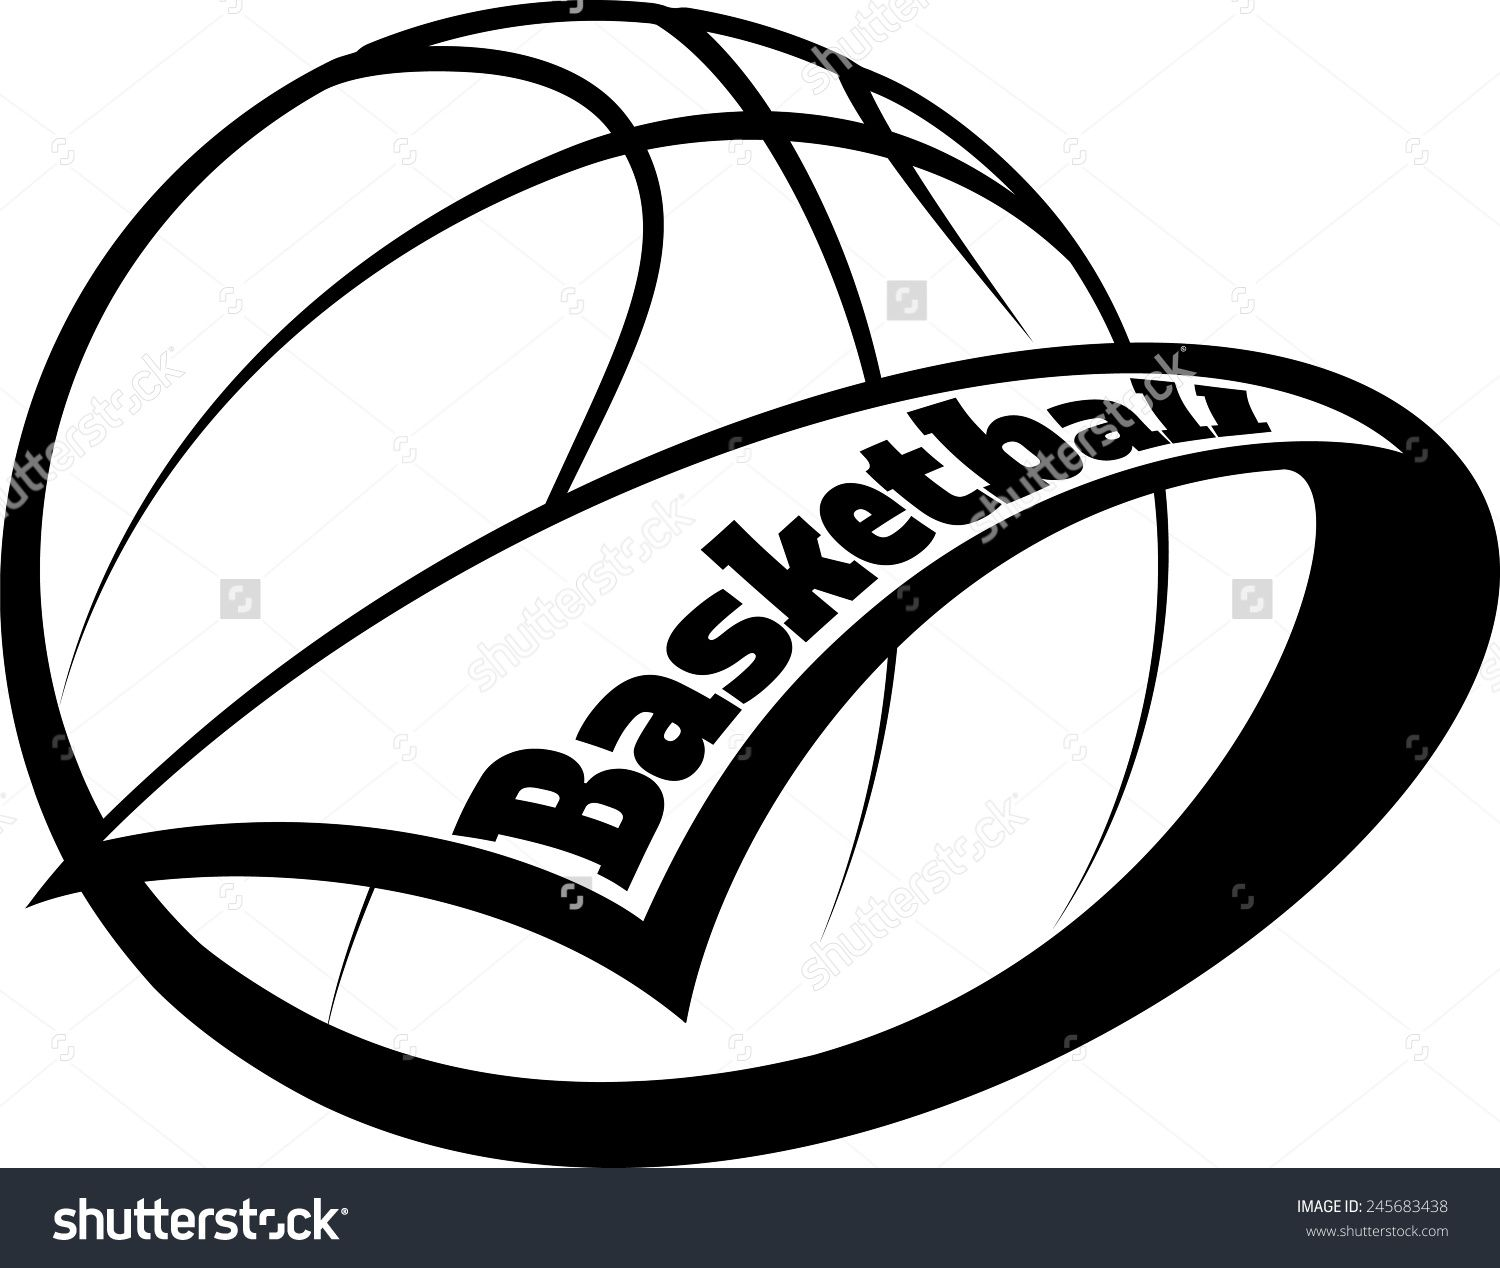 Awards clipart basketball. Stylized with a pennant